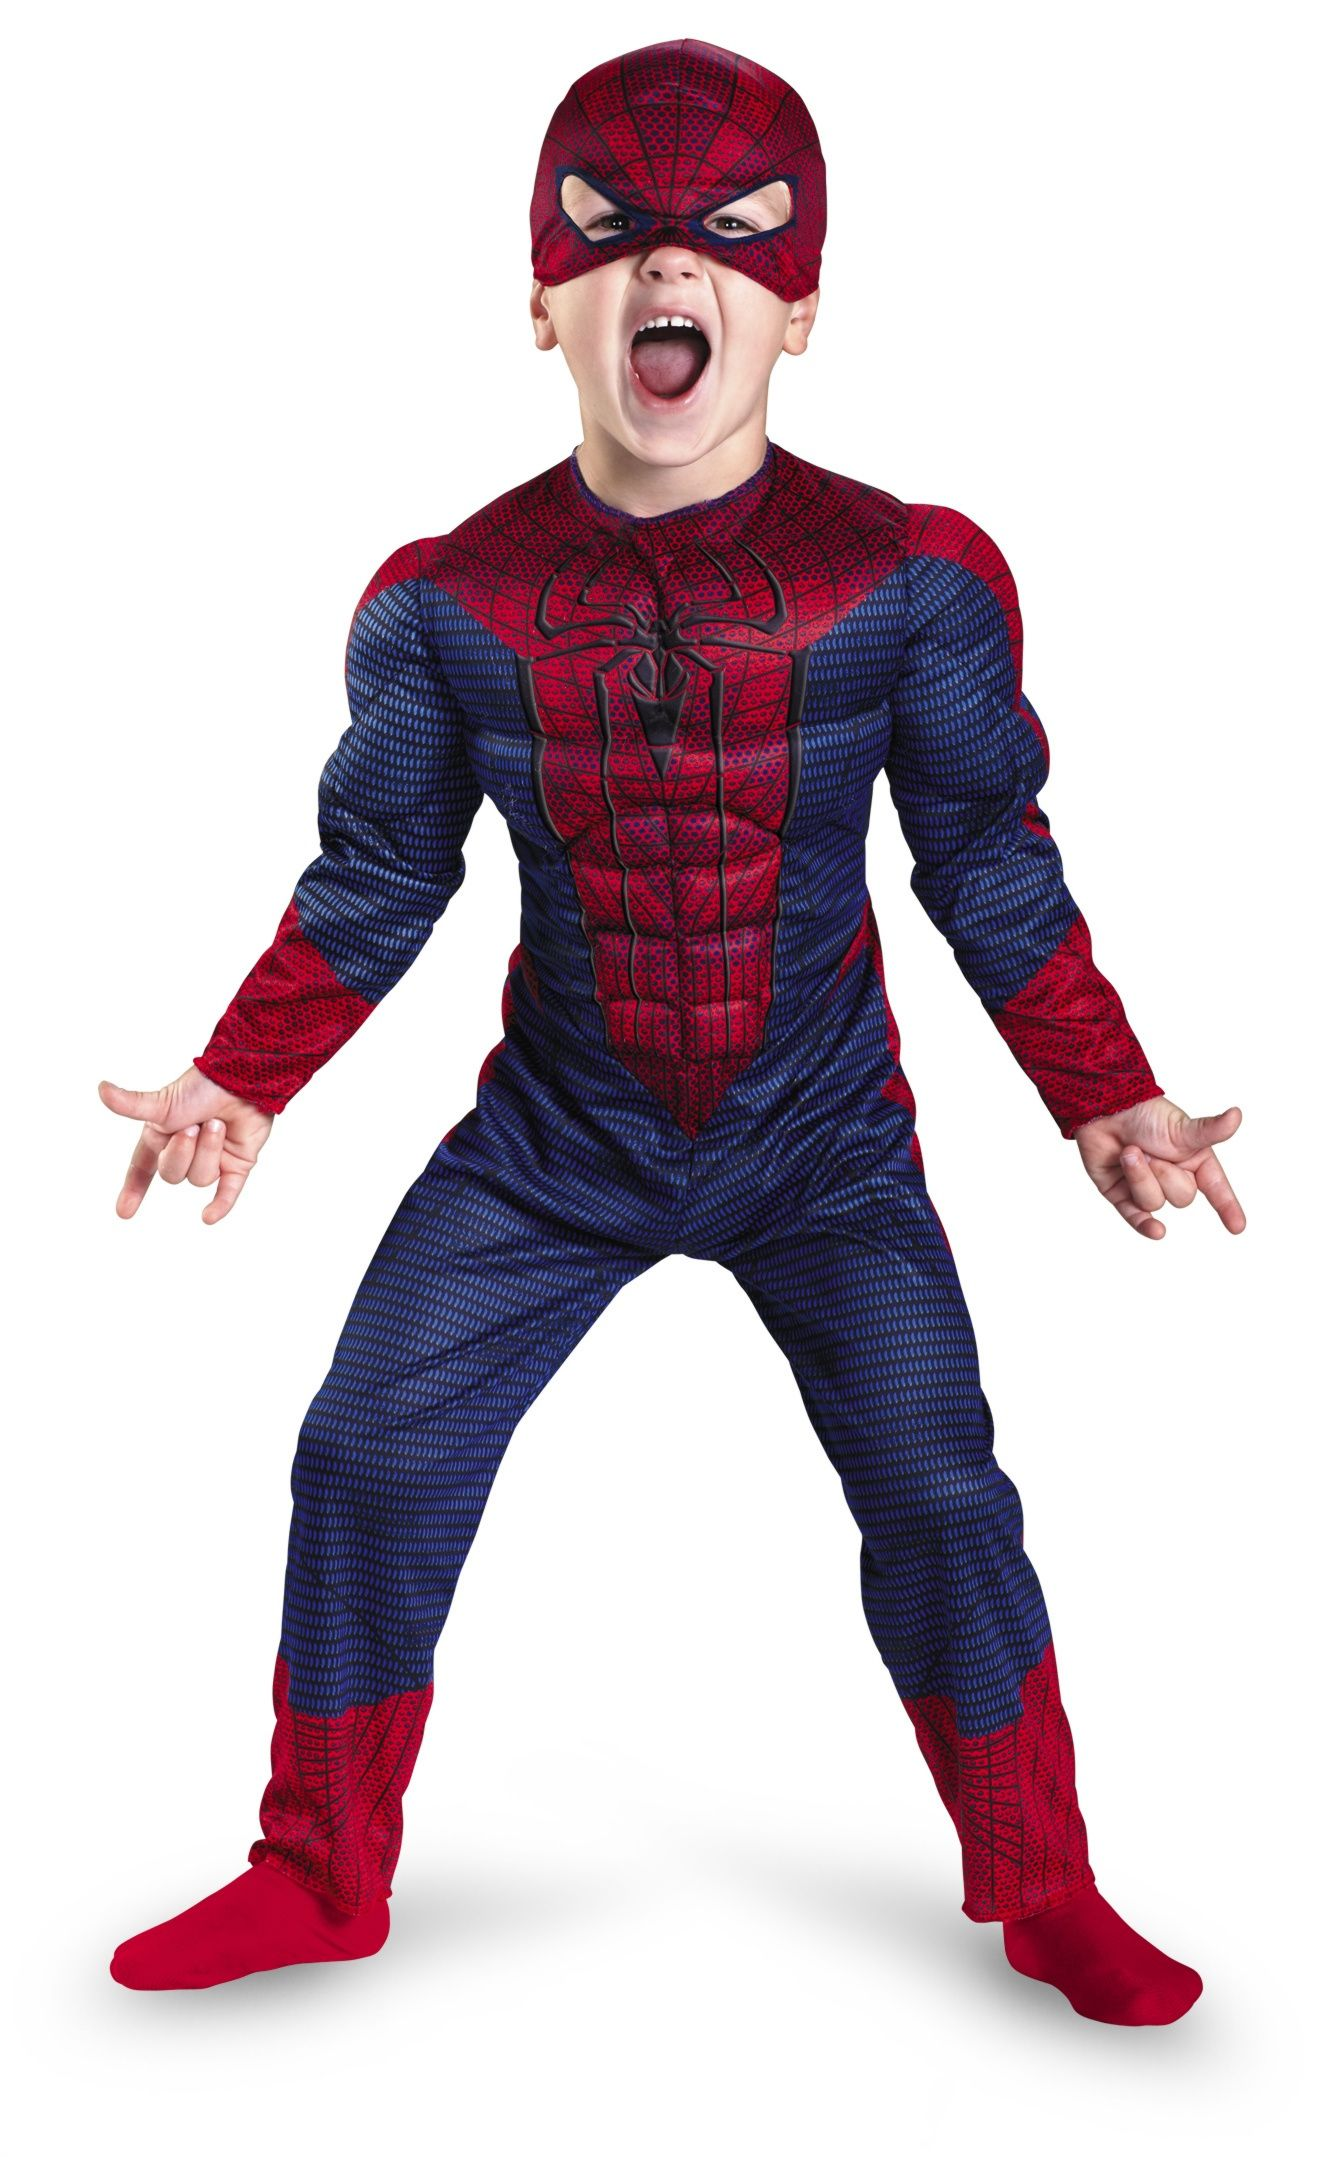 Spiderman Kids Costume from the Movie Amazing Spiderman. Superhero Costume for Kids.  sc 1 st  Pinterest & Amazing Spiderman Muscle Boys Costume | Spiderman and Costumes